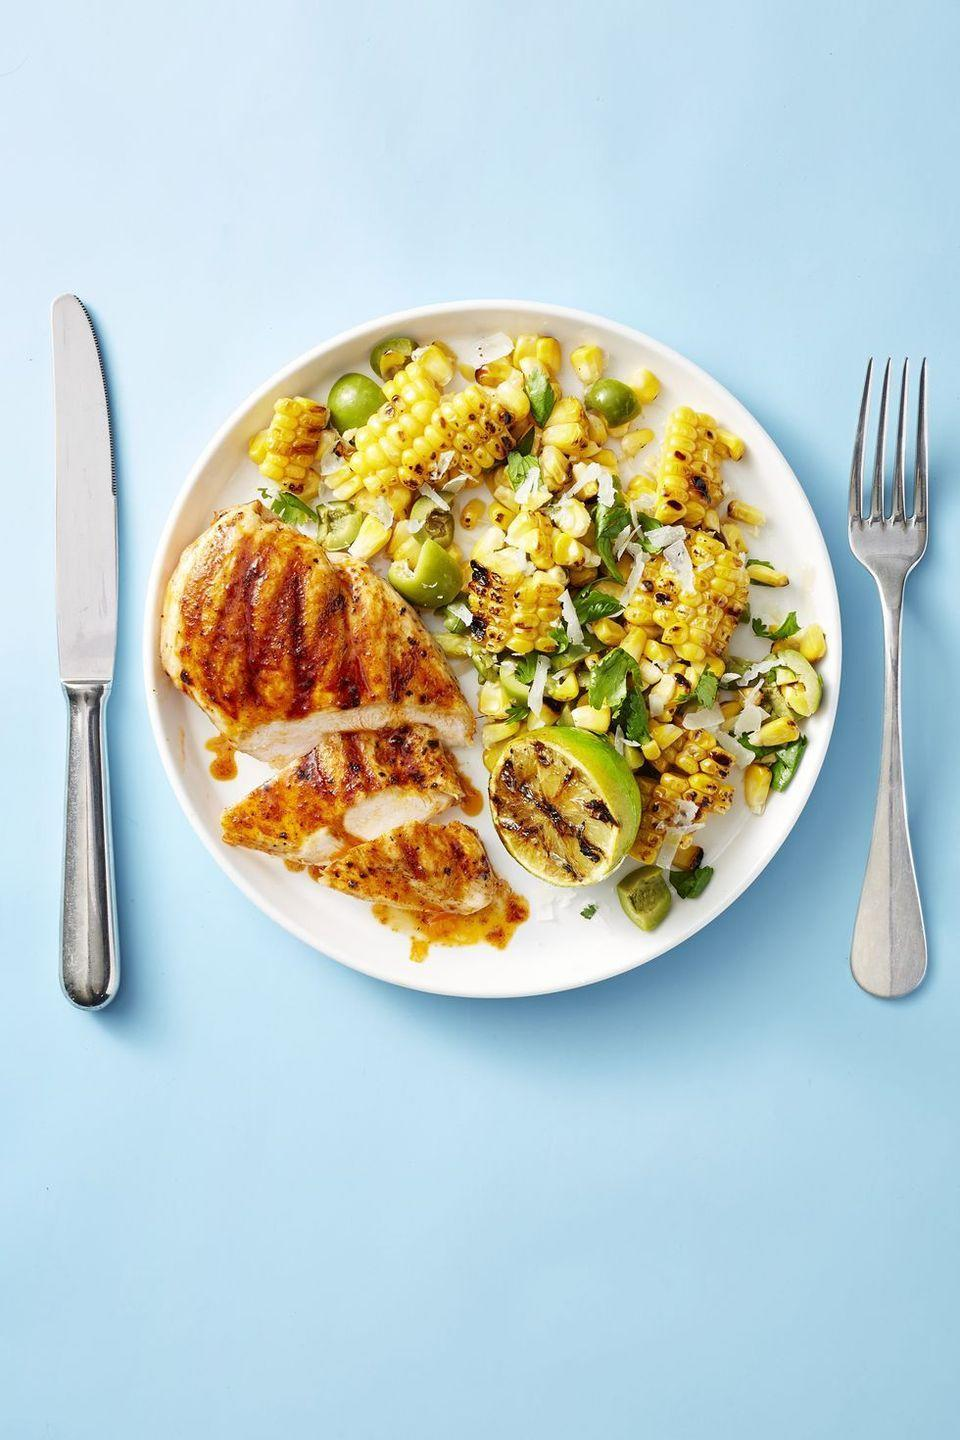 """<p>There's never been a better reason to fire up the grill than for this chicken recipe that calls for charred corn tossed with cilantro and Manchego cheese.</p><p><em><a href=""""https://www.goodhousekeeping.com/food-recipes/easy/a22576305/grilled-chicken-with-smoky-corn-salad-recipe/"""" rel=""""nofollow noopener"""" target=""""_blank"""" data-ylk=""""slk:Get the recipe for Grilled Chicken with Smoky Corn Salad »"""" class=""""link rapid-noclick-resp"""">Get the recipe for Grilled Chicken with Smoky Corn Salad »</a></em></p>"""